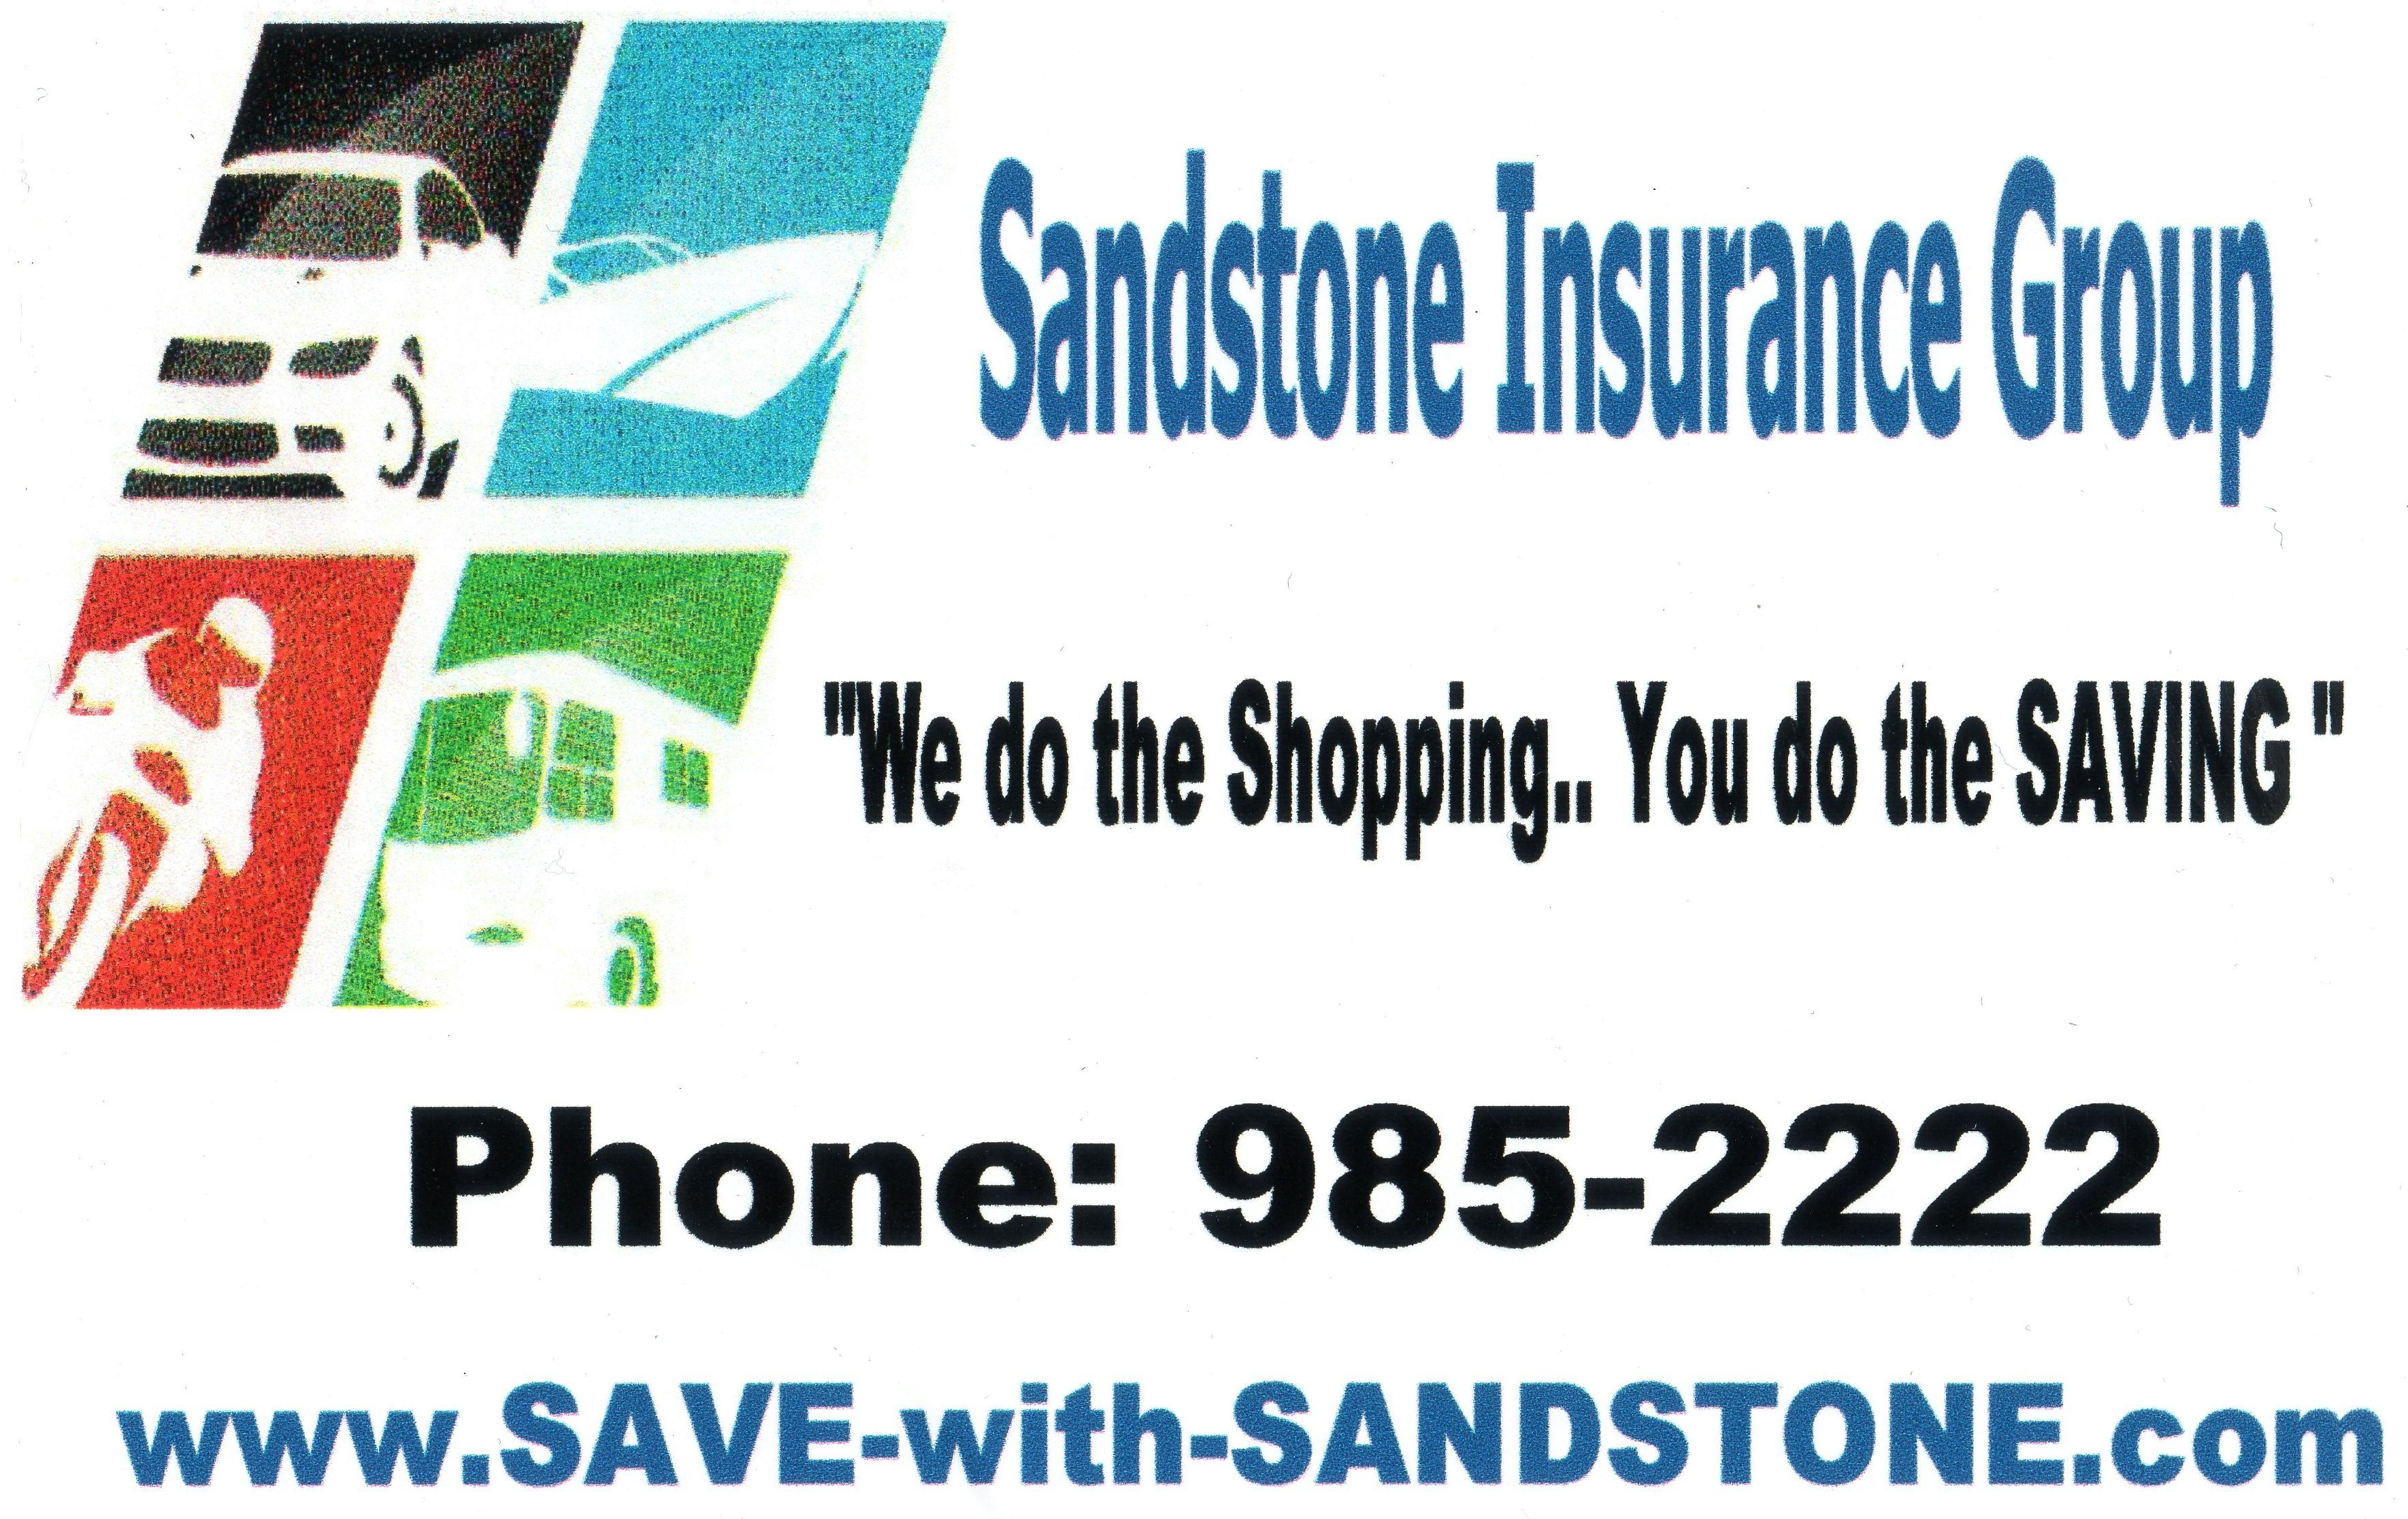 image of the Sandstone Insurance Group